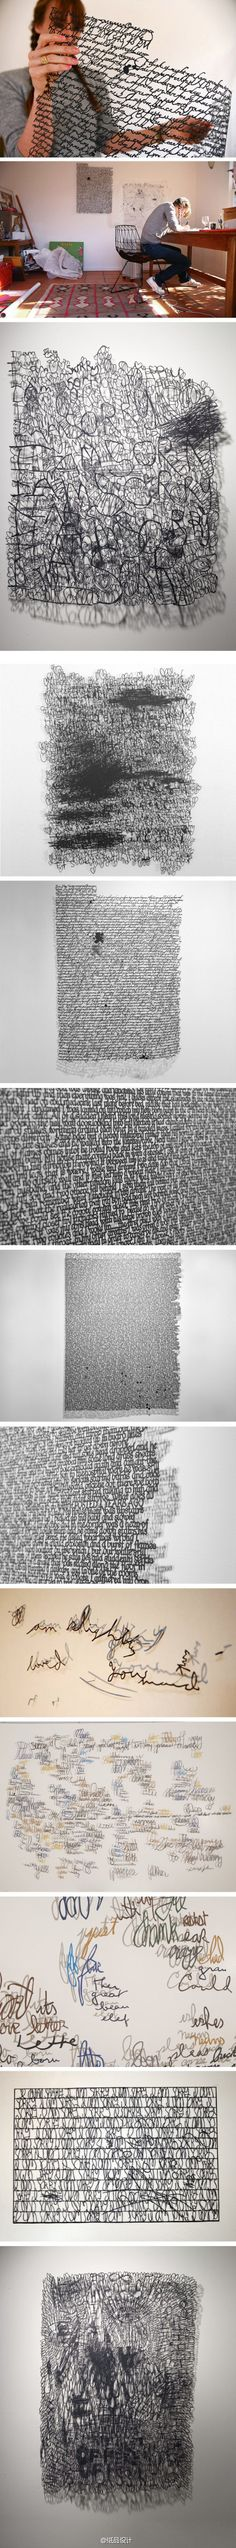 Annie Vought. Text into paper. and more ~ http://annievought.com/